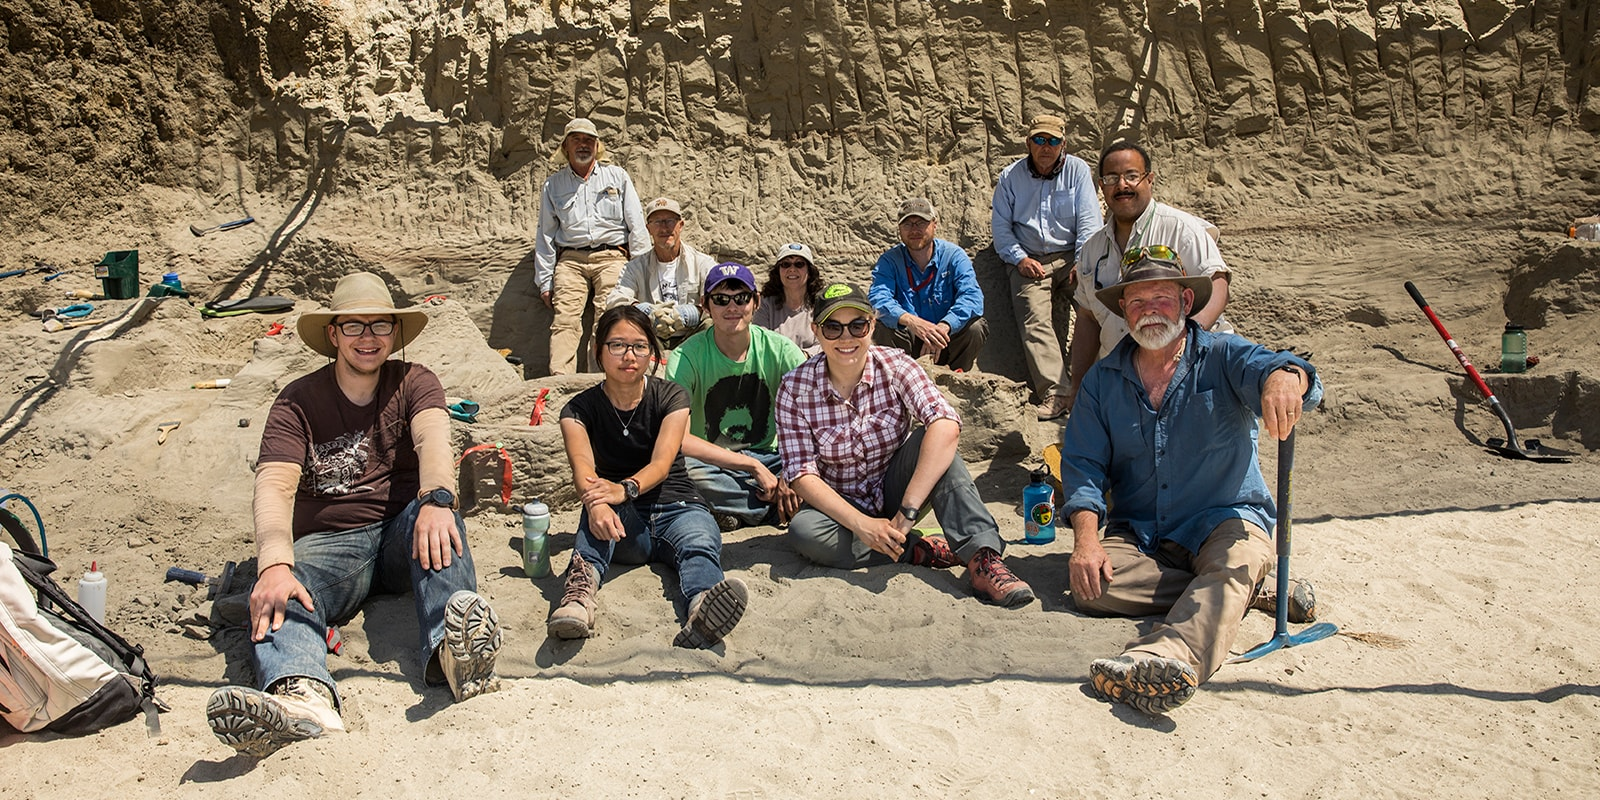 A group of eleven people posing for a group photo at a t.rex dig site